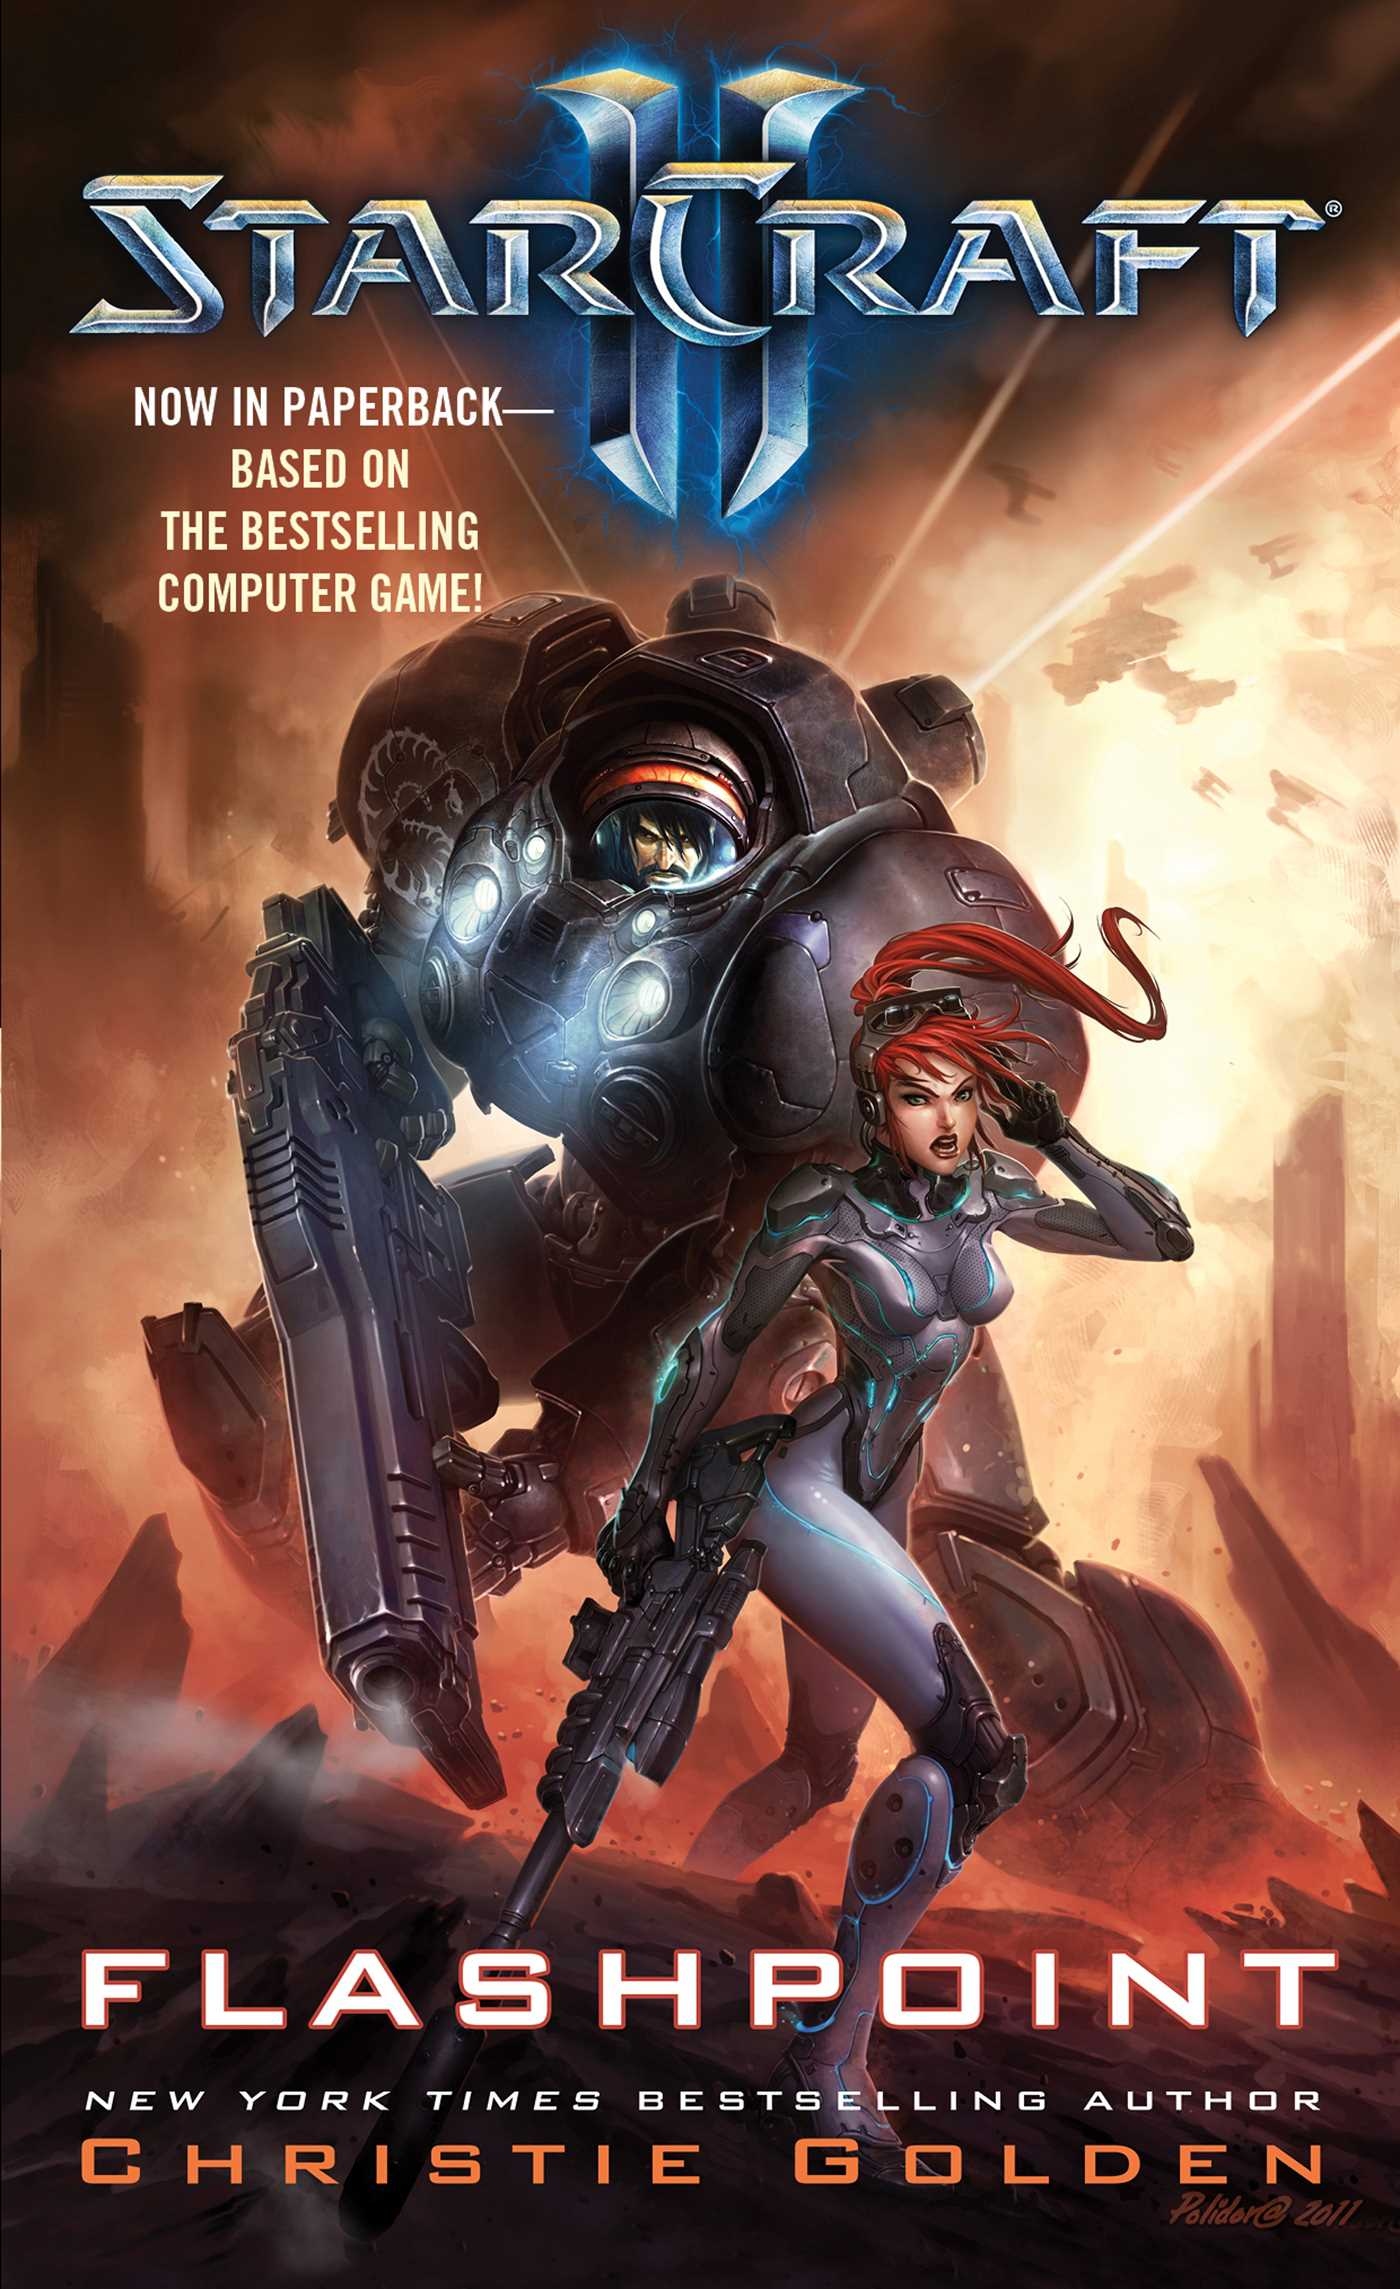 Starcraft ii flashpoint 9781416560043 hr